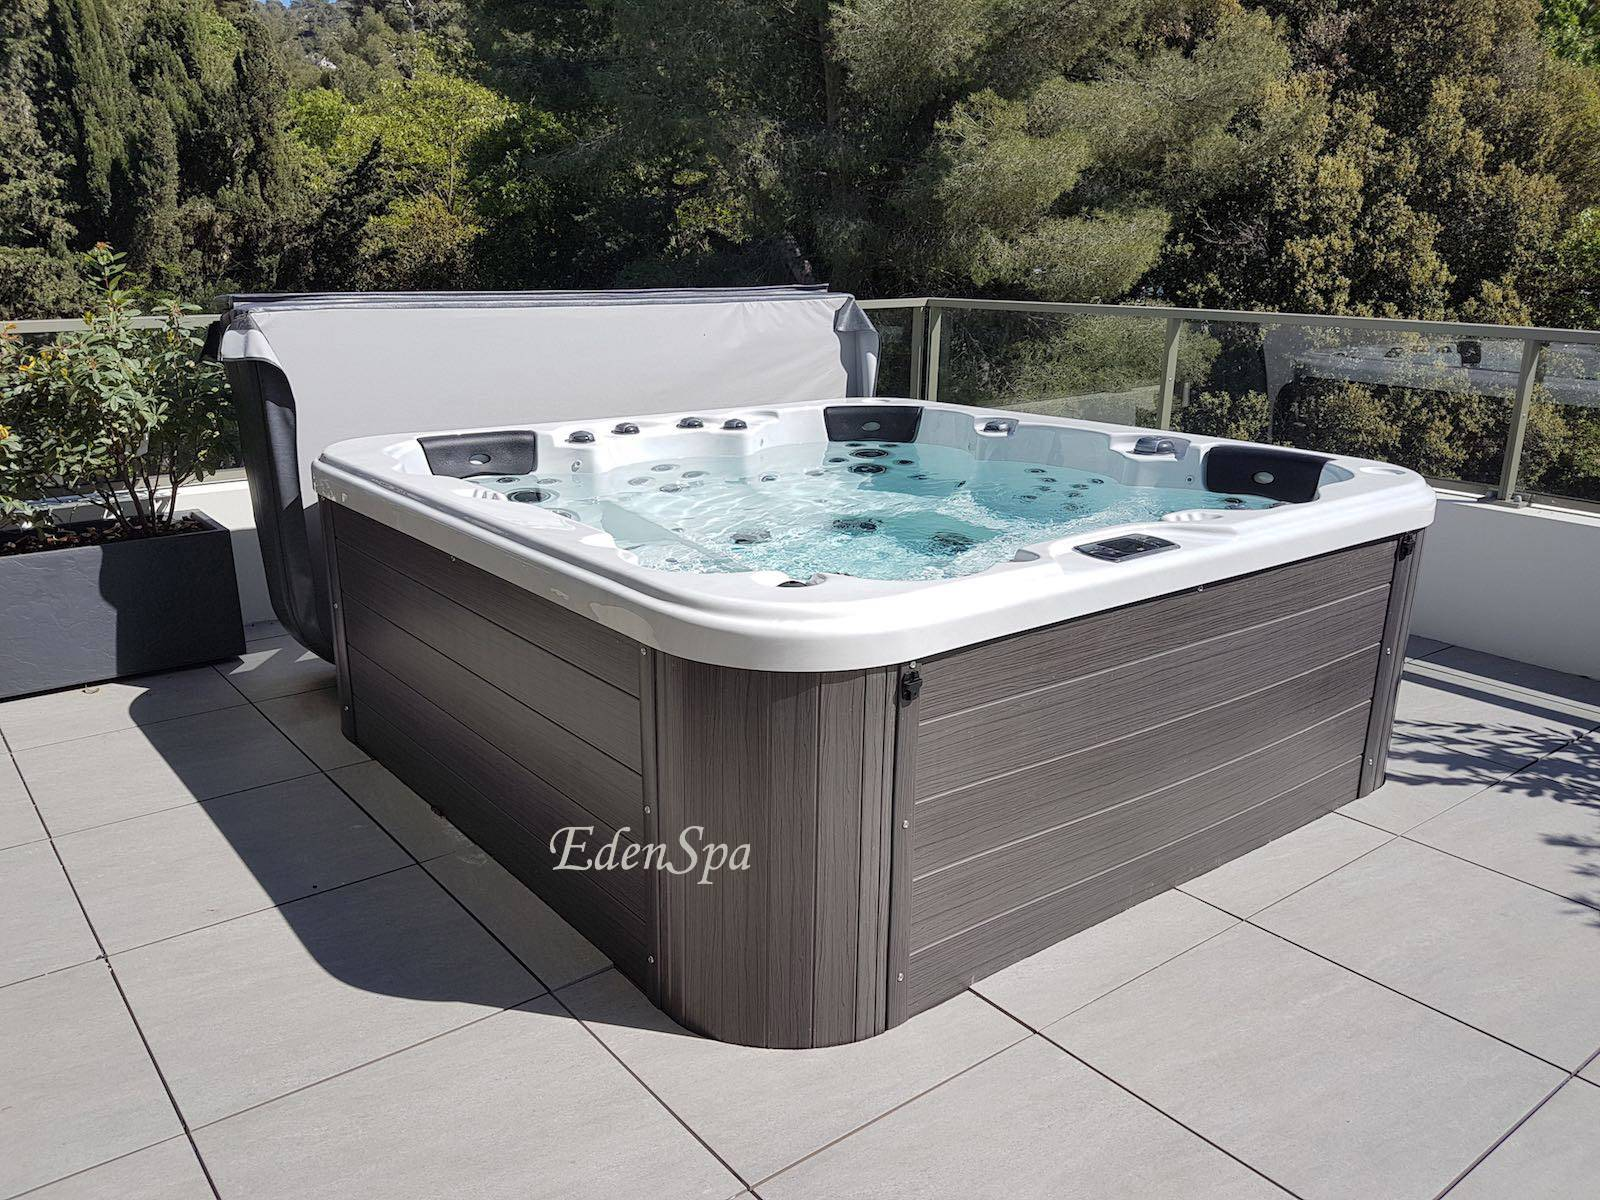 Un Spa 5 Places Sur Un Toit Terrasse Modele O575 A Marseille Be